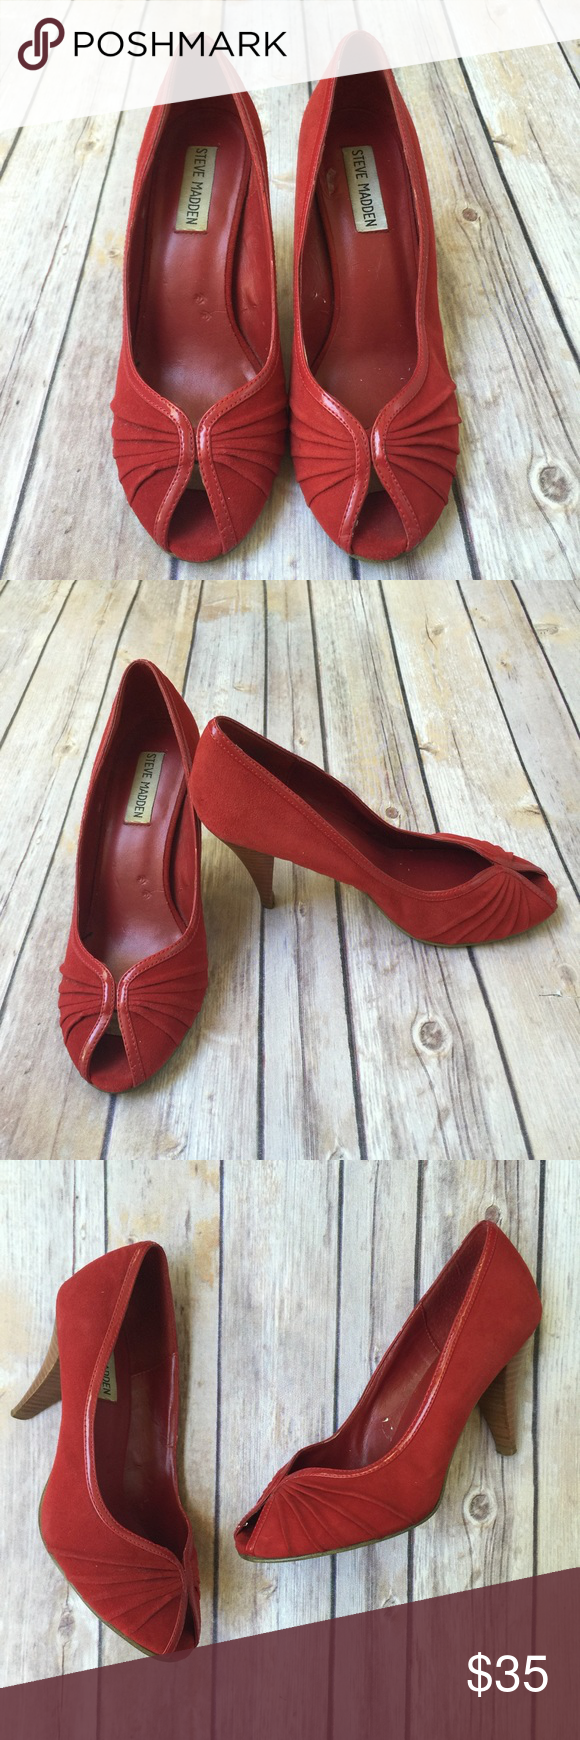 """🚨 BOGO Steve Madden Peep-Toe Heels Peep-toed red heels are a must for summer! They will brighten up any dress. And they will take any outfit from drab to fab! Leather upper. 3"""" heel. Everything in my closet is BOGO half off today only. Steve Madden Shoes Heels"""